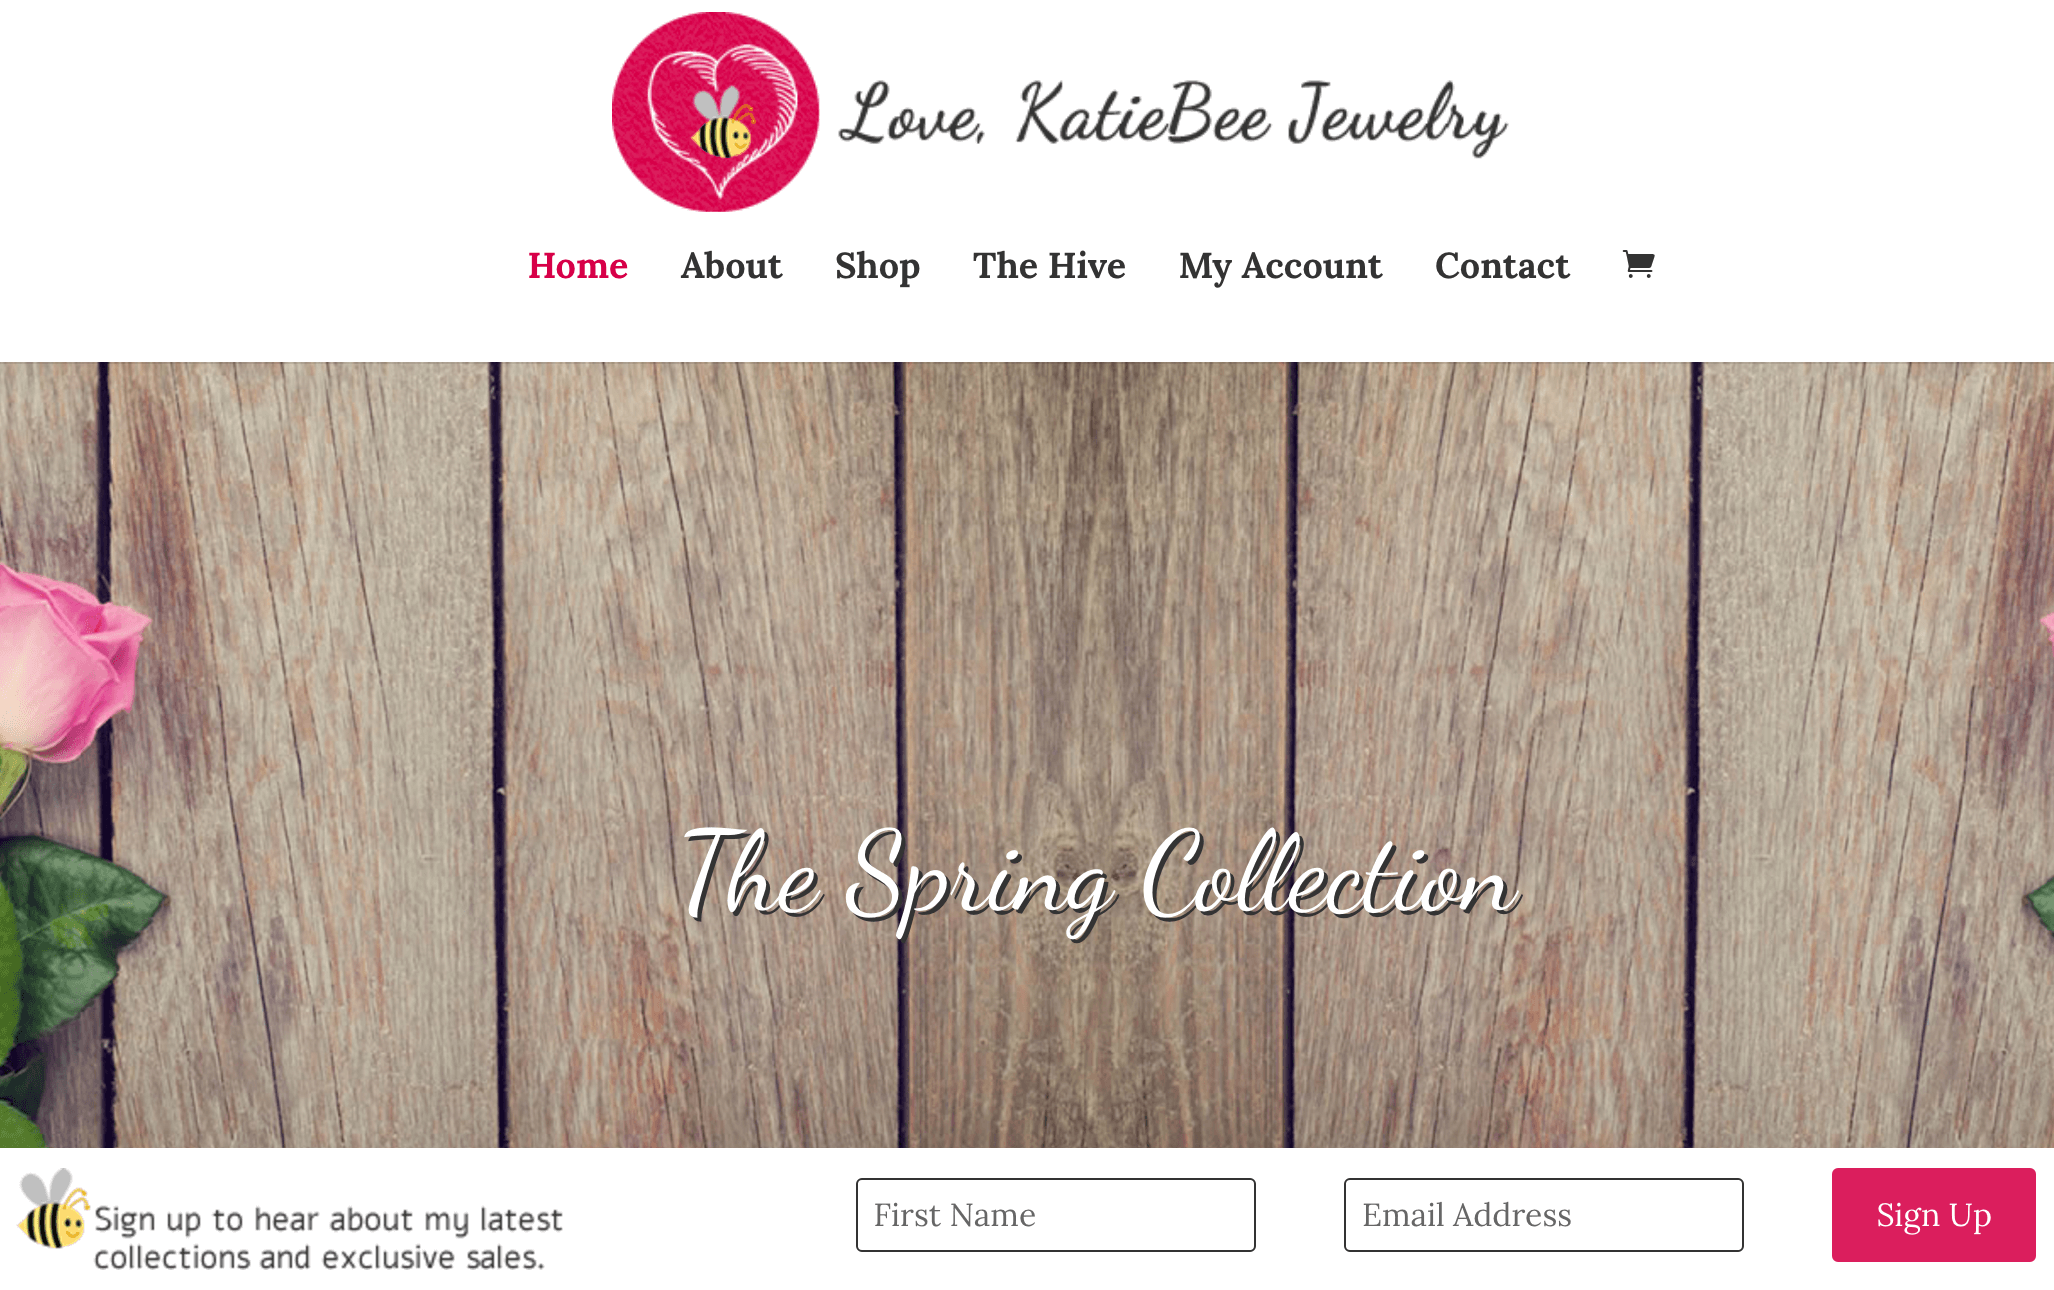 The KatieBee Jewelry homepage.